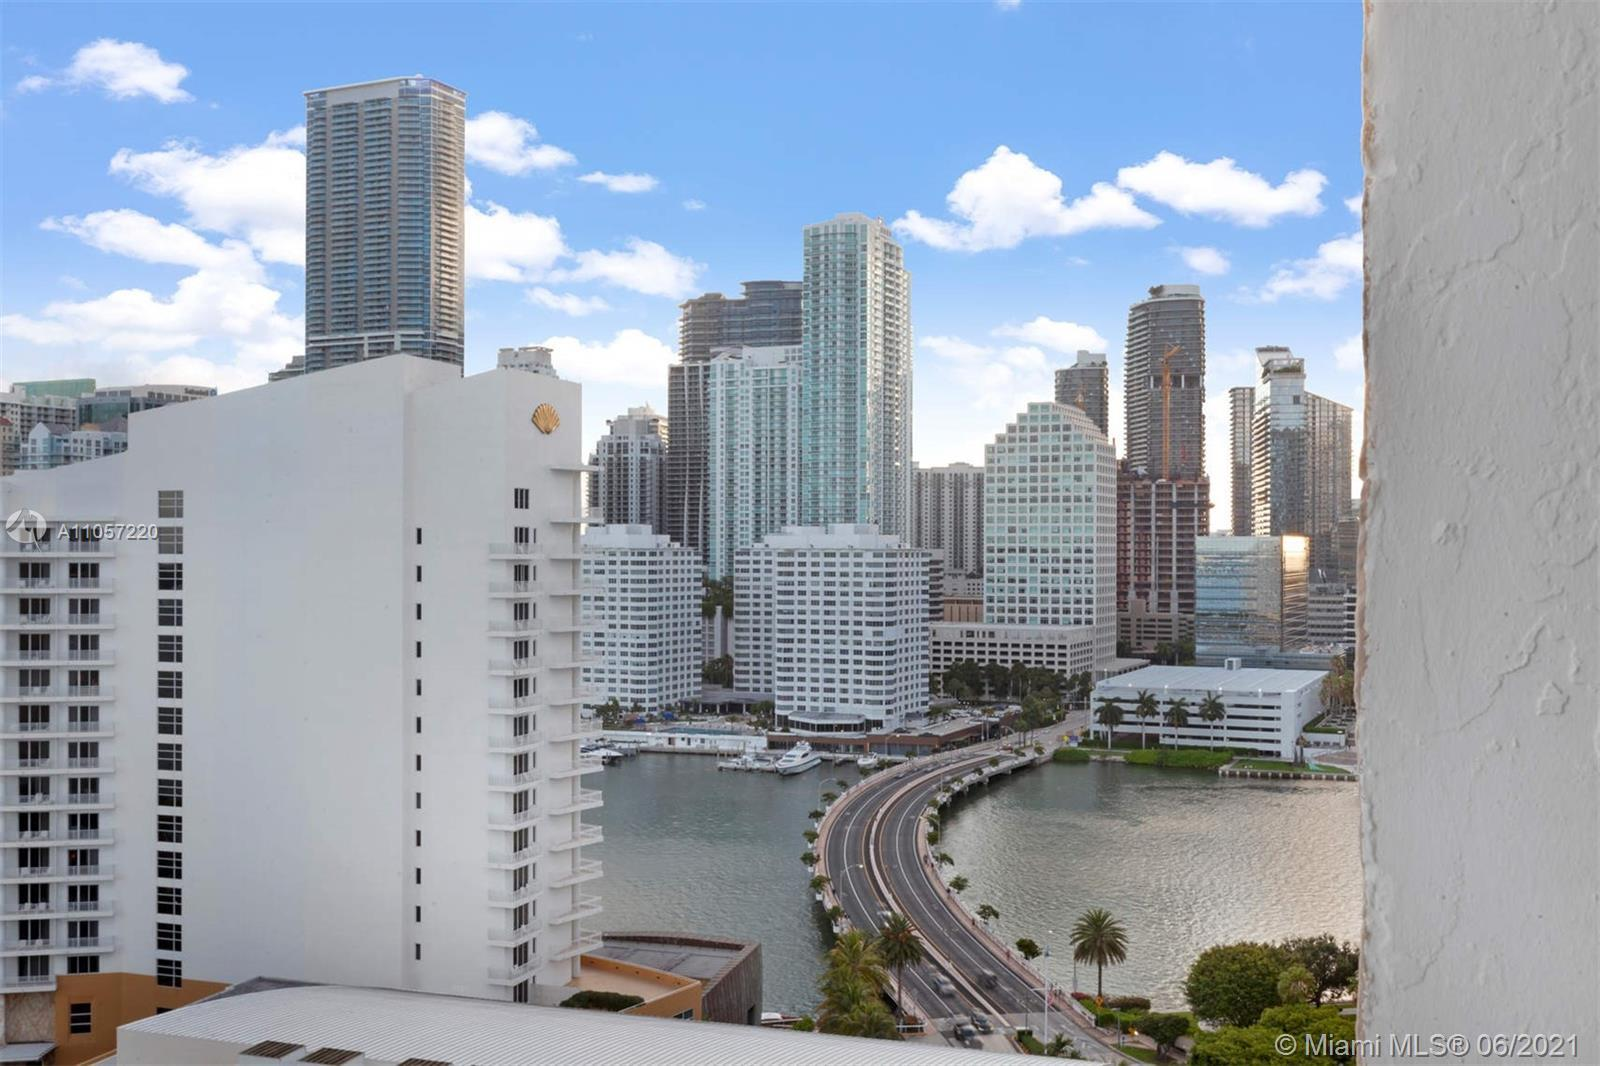 Enjoy the serene lifestyle that Brickell Key has to offer - including its own supermarket, restauran